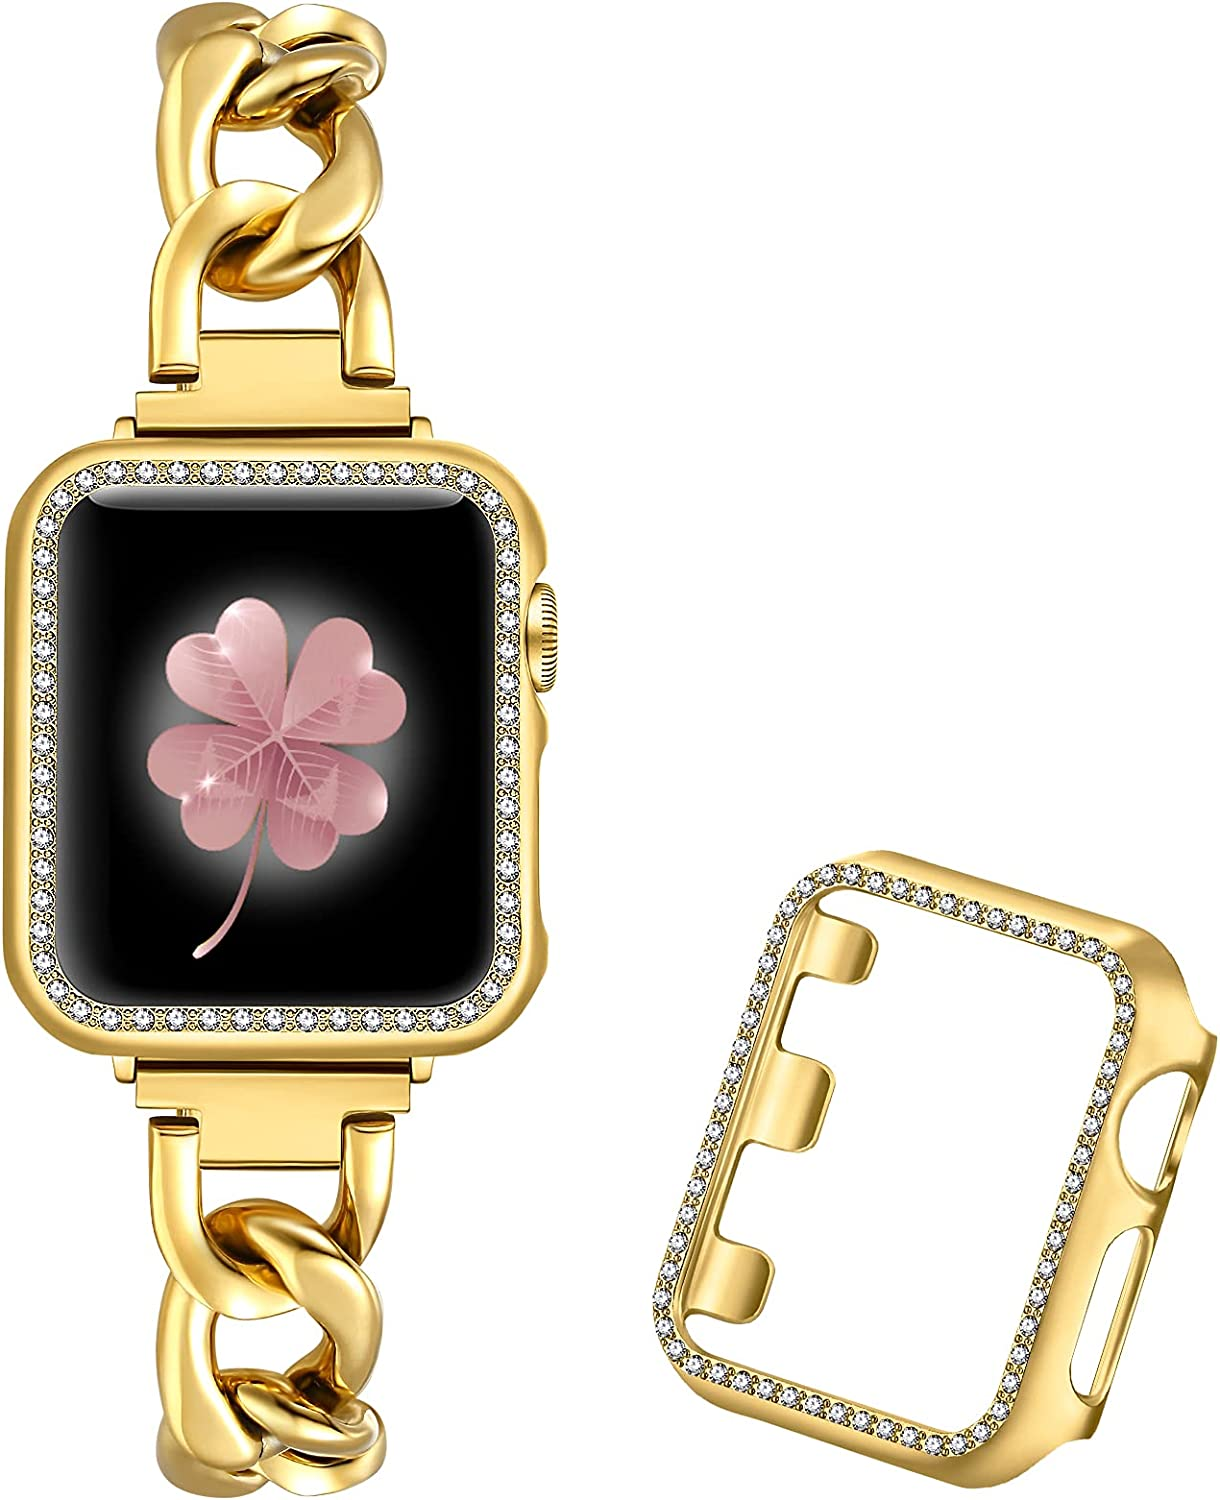 Dilando Cool Chain Metal Link Bands Compatible with Apple Watch 38mm 40mm 42mm 44mm Women with Bling Case, Gold Stainless Steel Band with Diamond Case for Iwatch SE series 6 5 4 3 2 1 (Gold, 40mm)